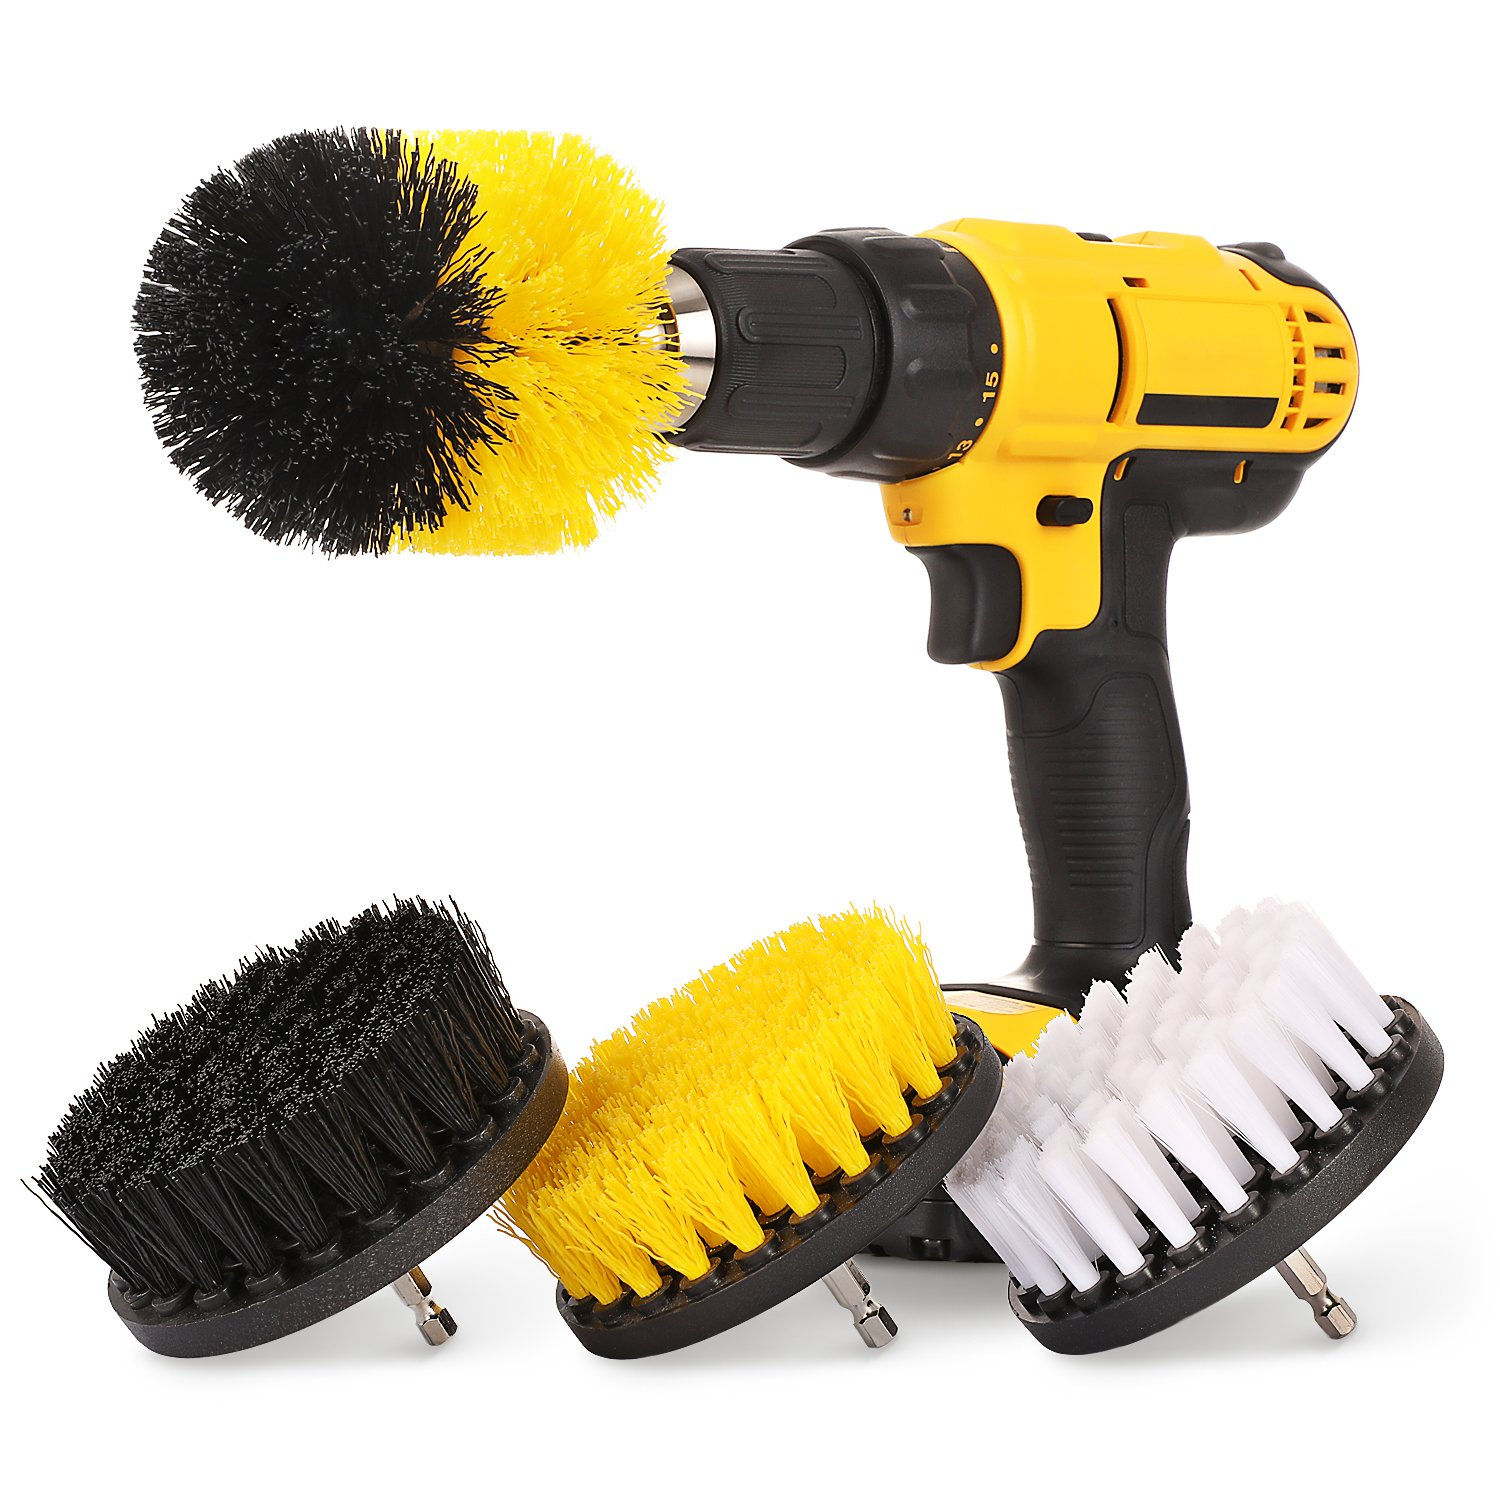 4 Piece Drill Brush Attachment Set - Soft, Medium and Stiff Power Scrubbing Drill Brush for Cleaning - White/Yellow / Black